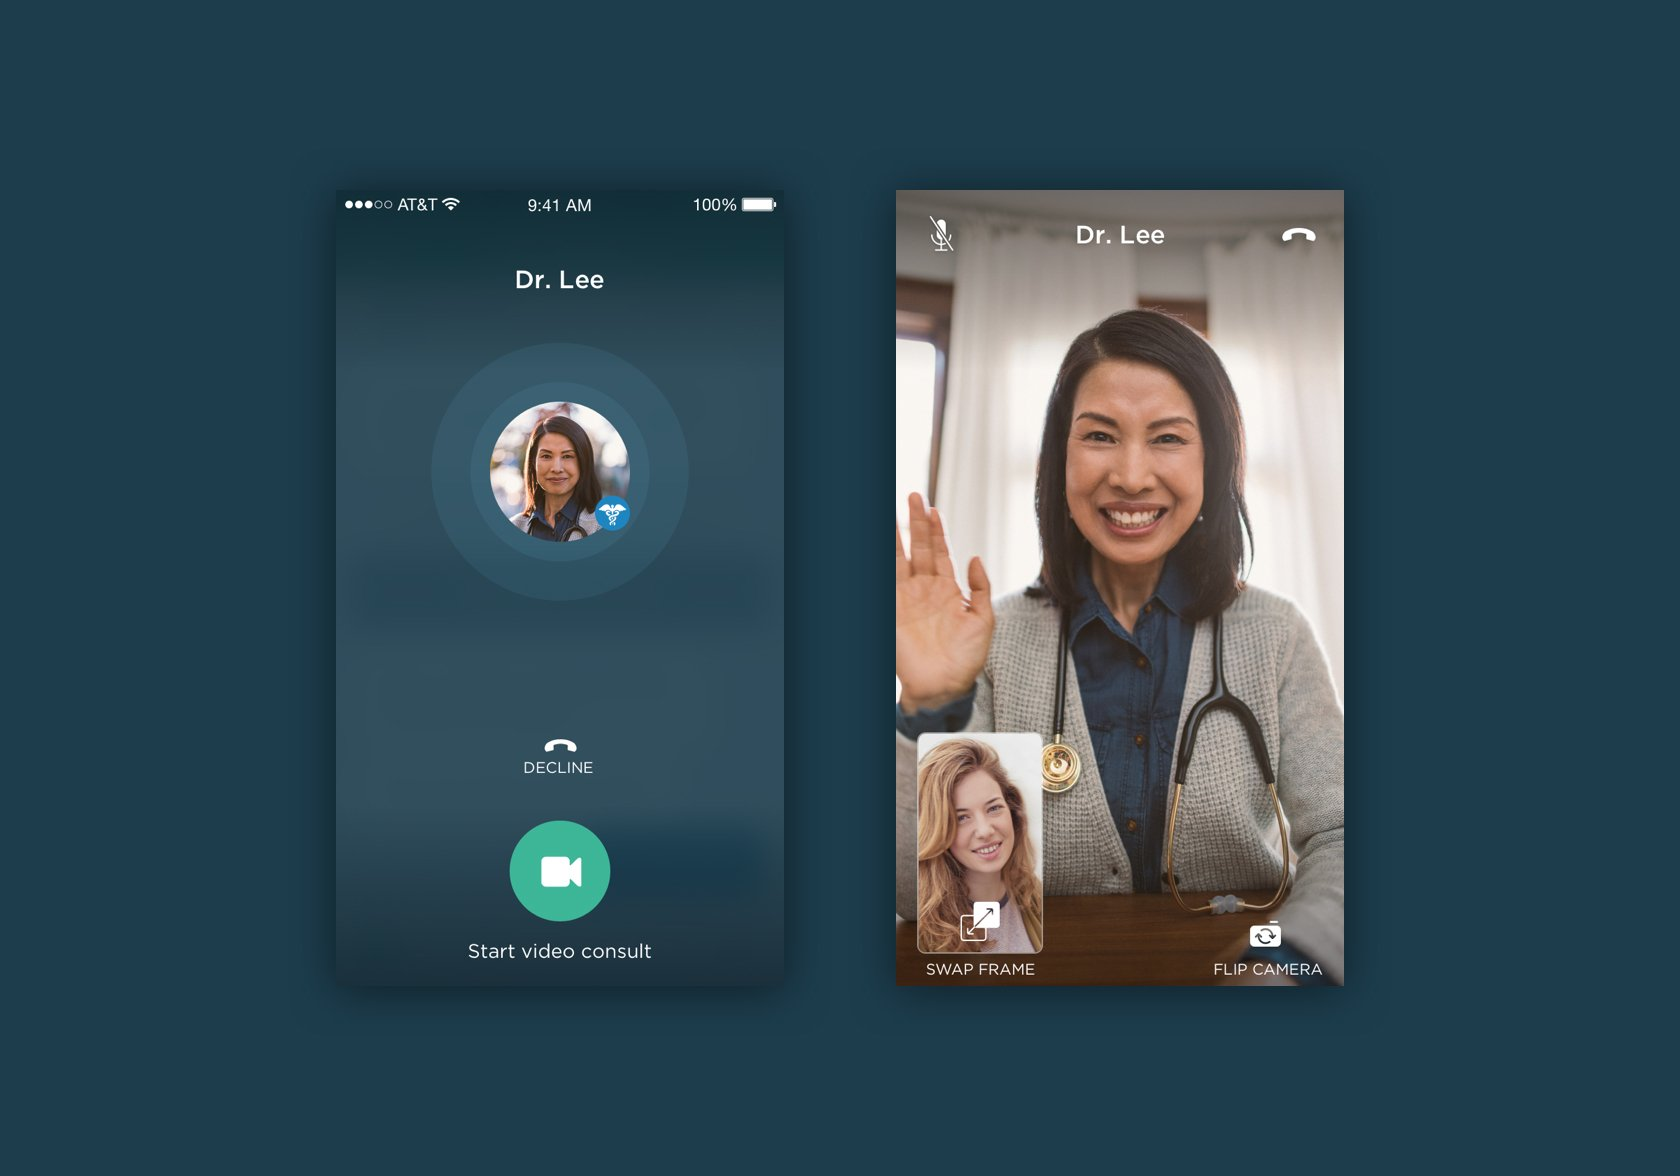 First Opinion uses video calling to connect doctors to patients